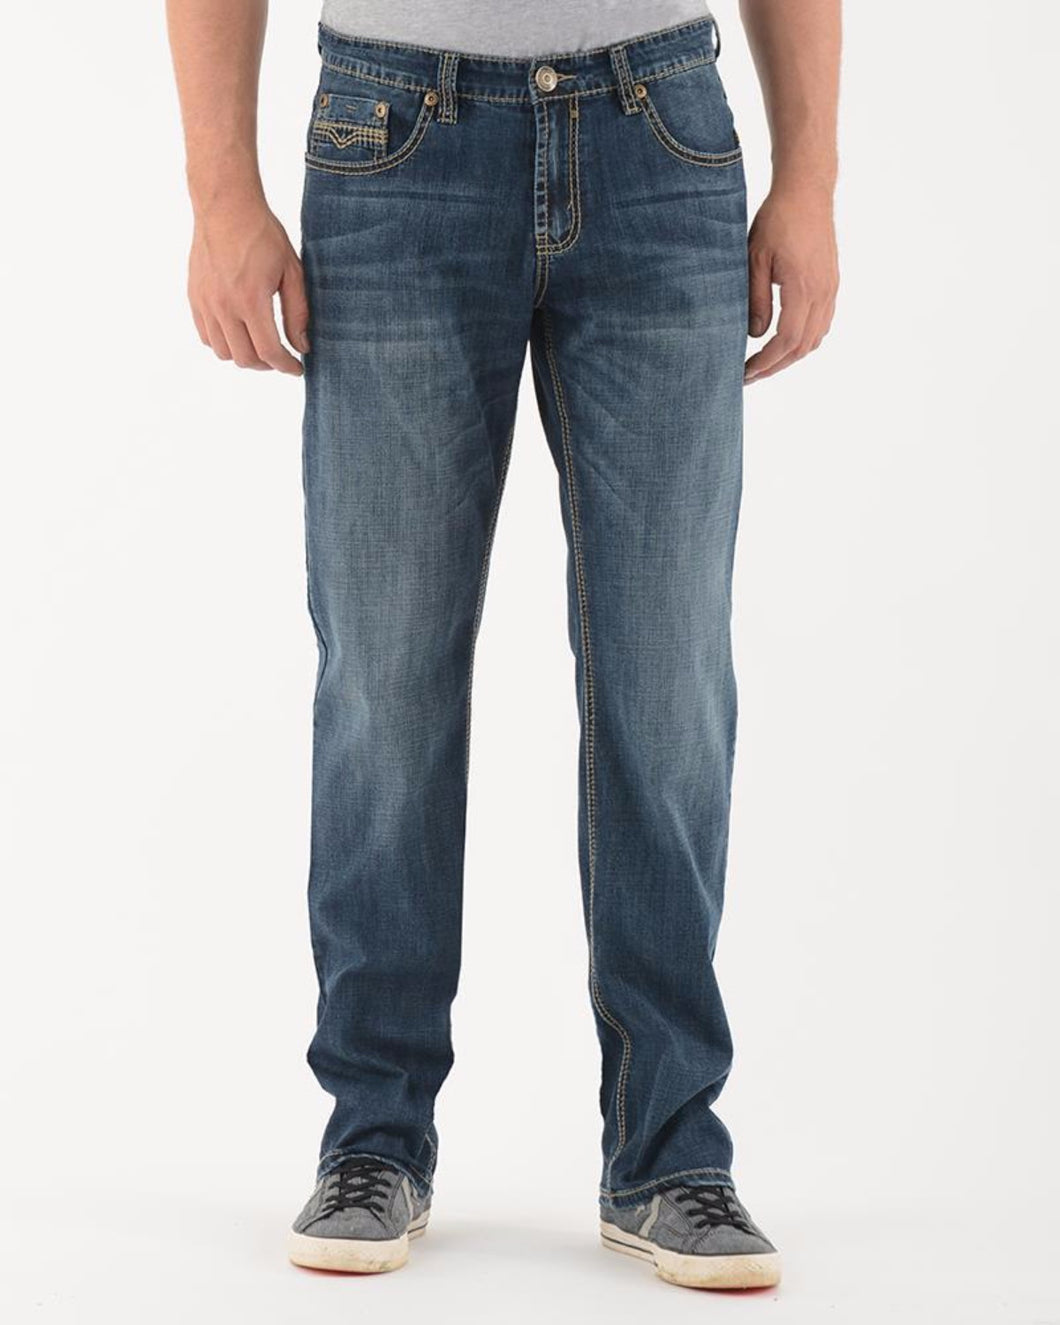 Frank MW Relaxed Fit Jeans 6027